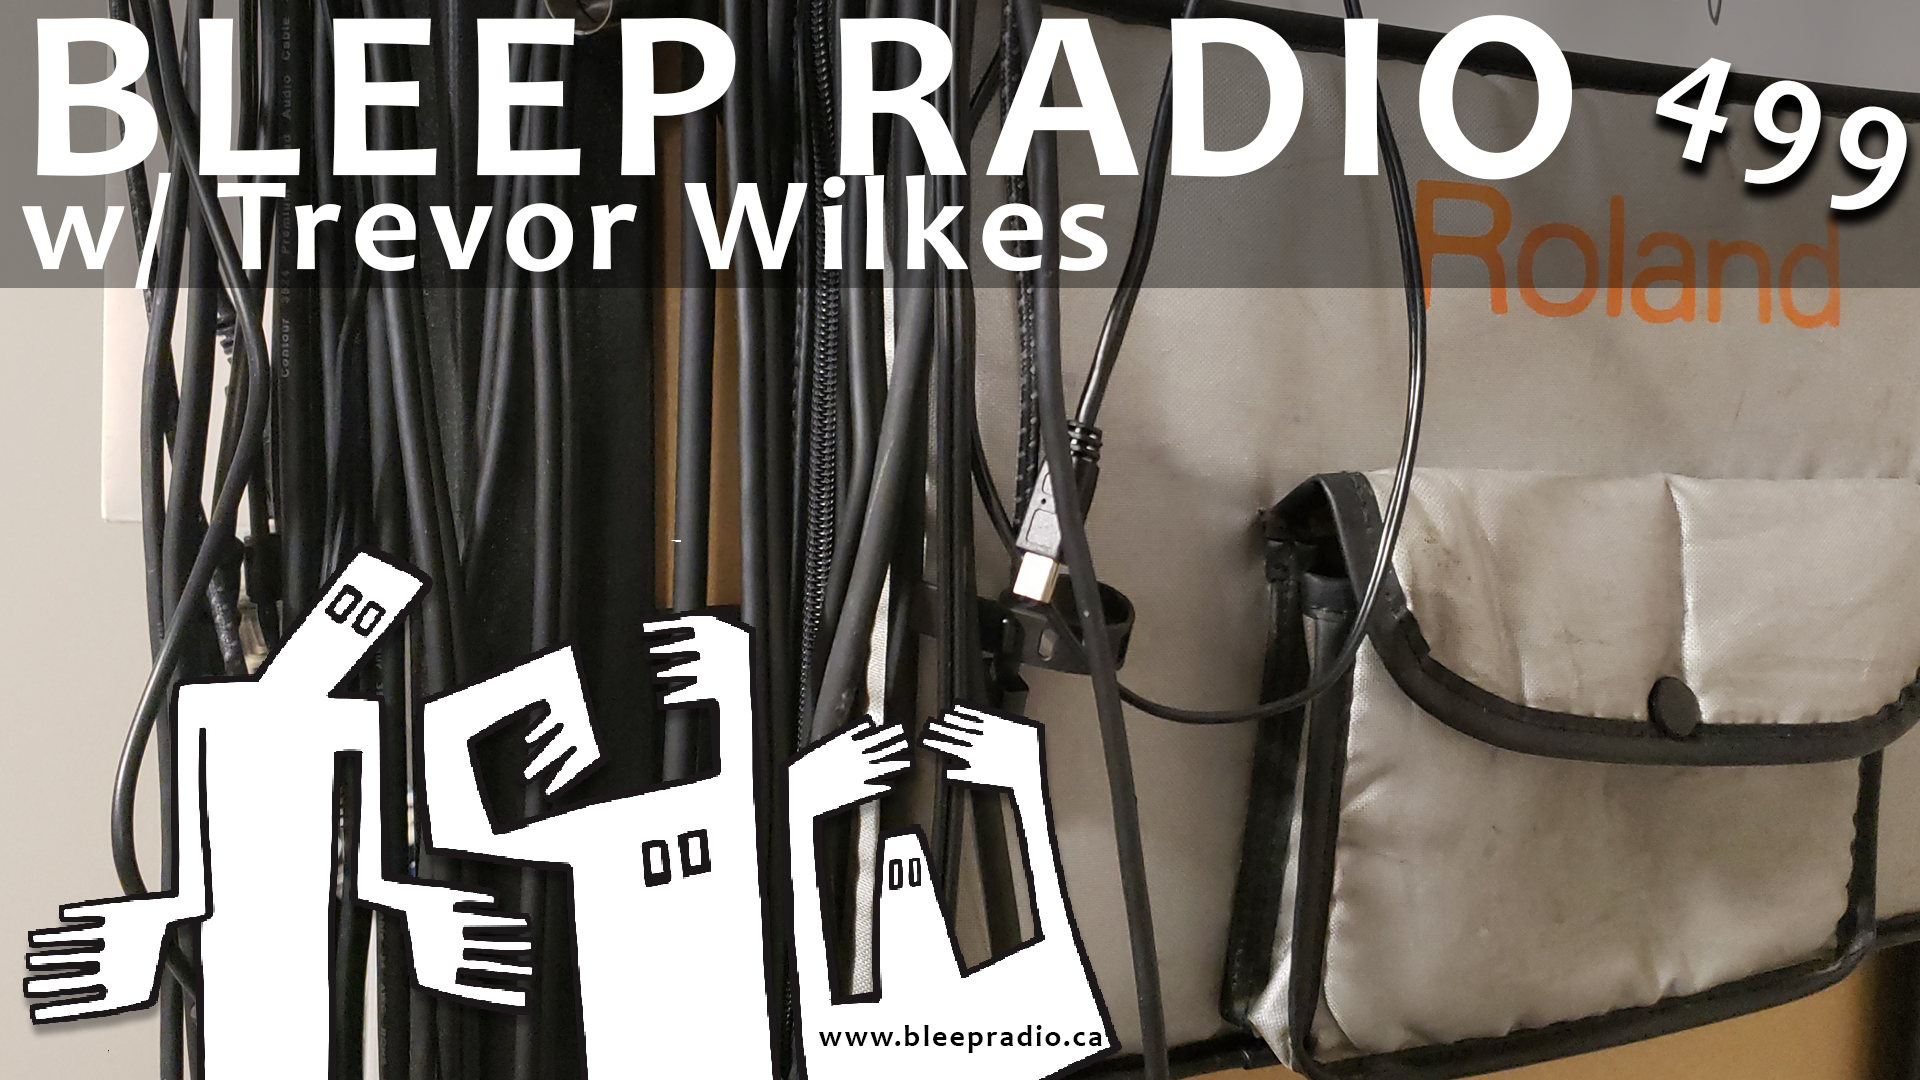 Bleep Radio #499 w/ Trevor Wilkes